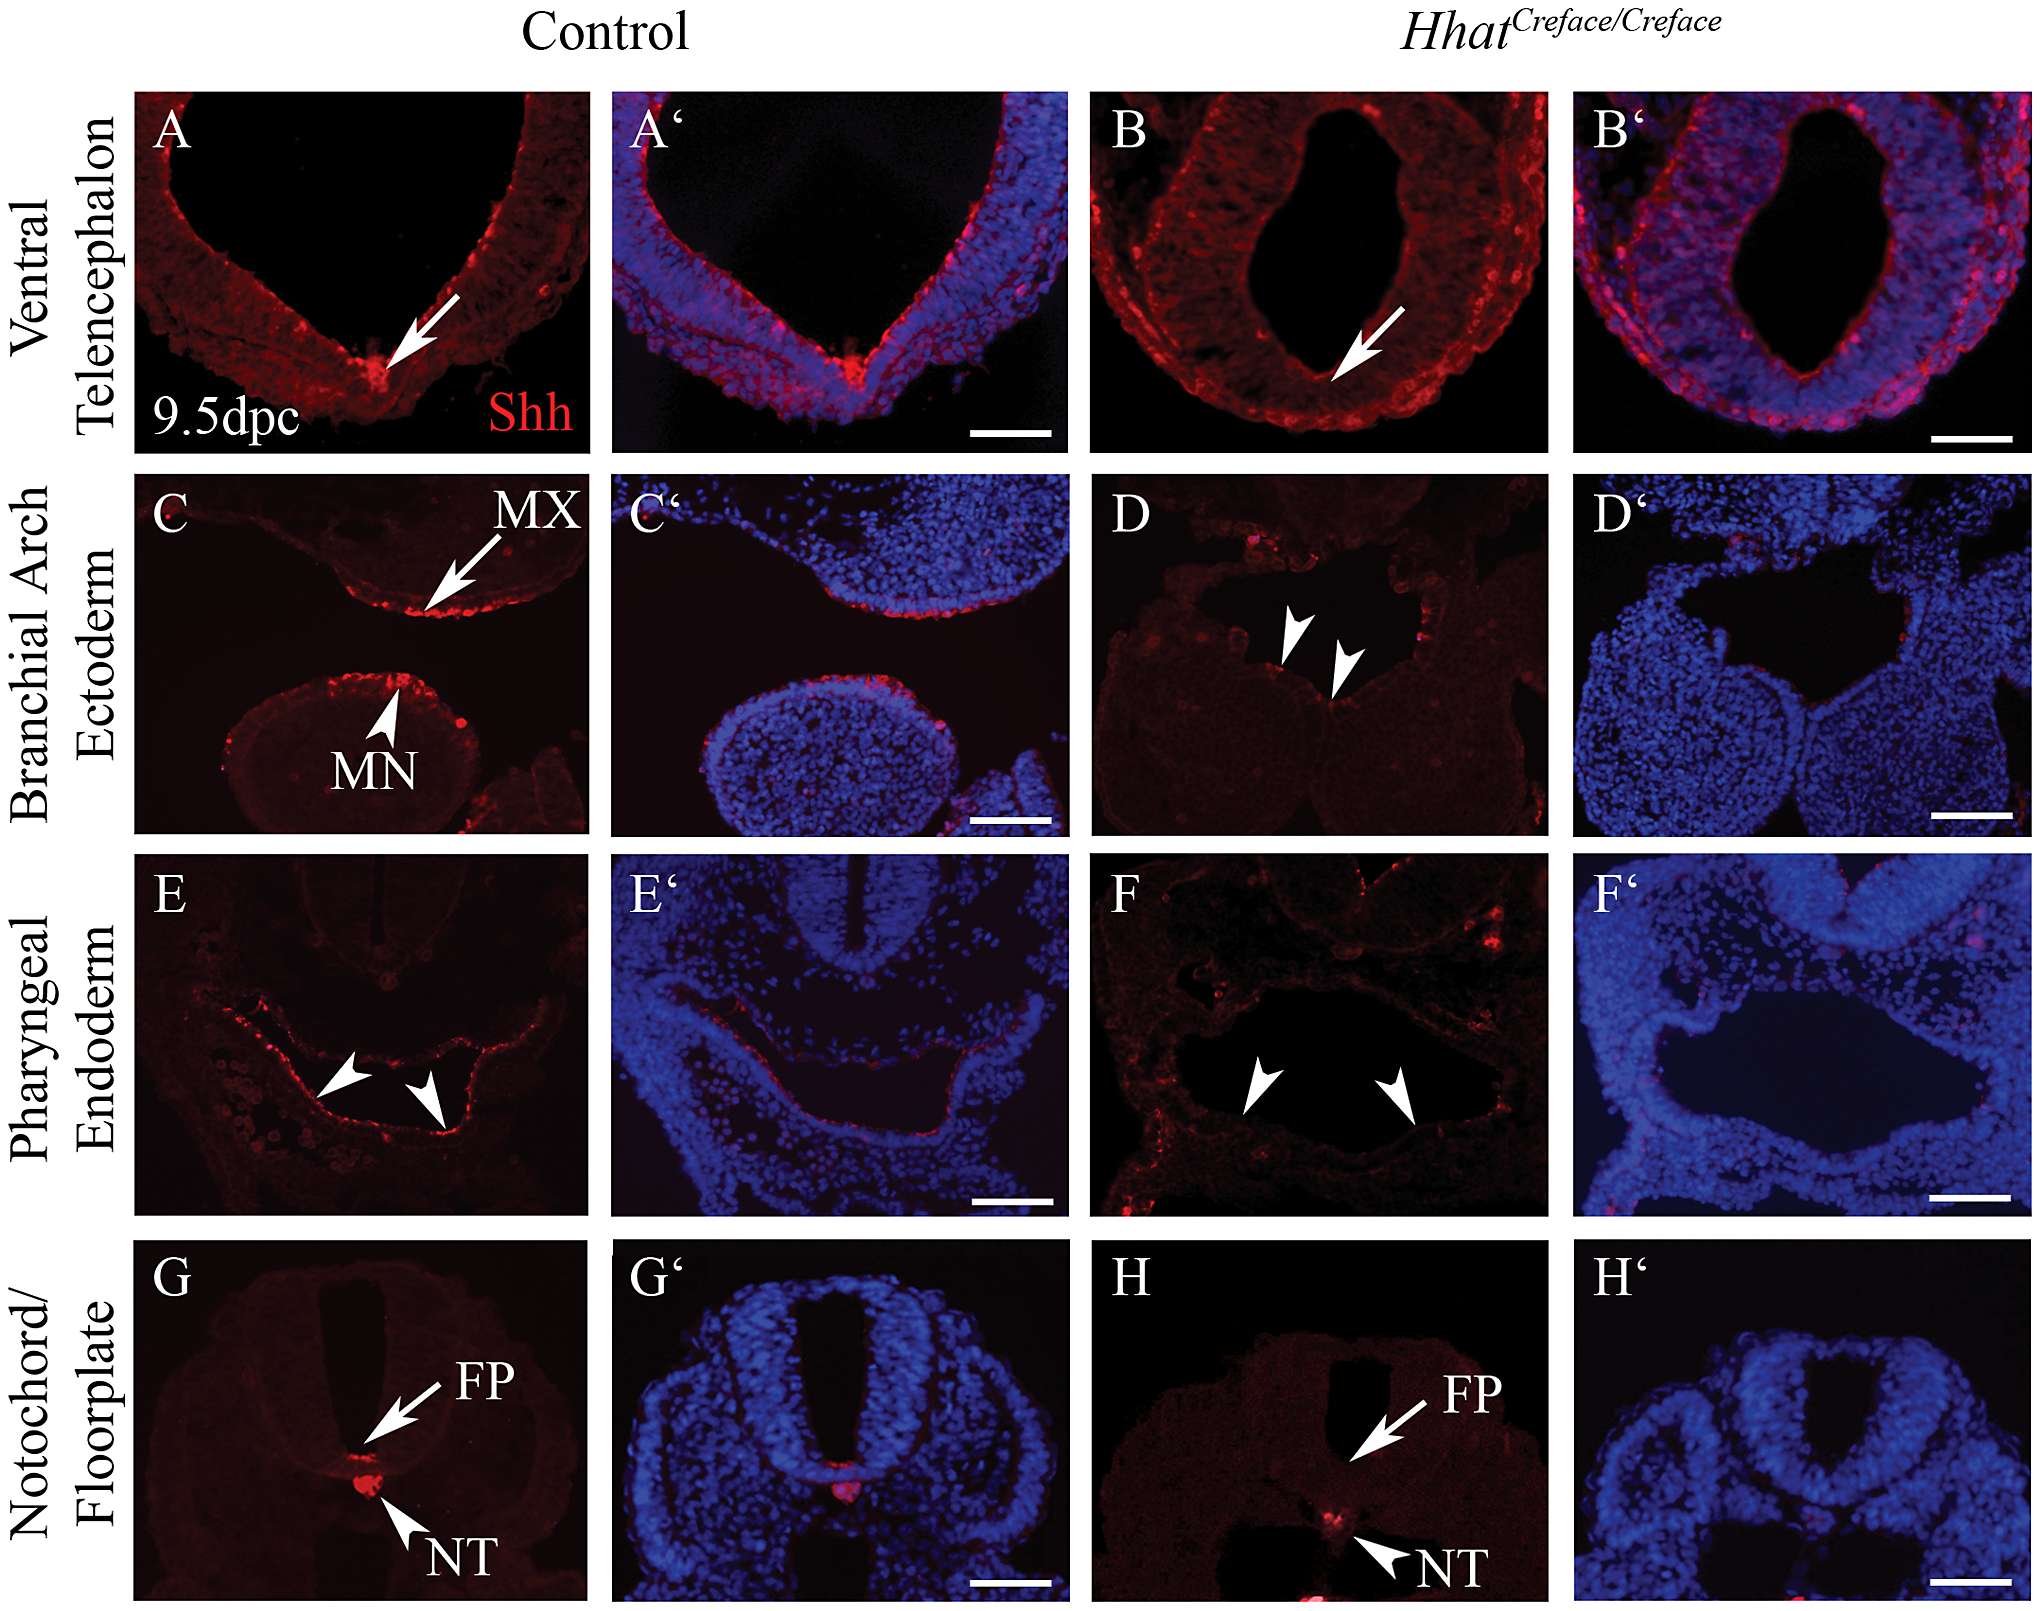 Shh activity is disrupted in <i>Hhat<sup>Creface/Creface</sup></i> embryos.